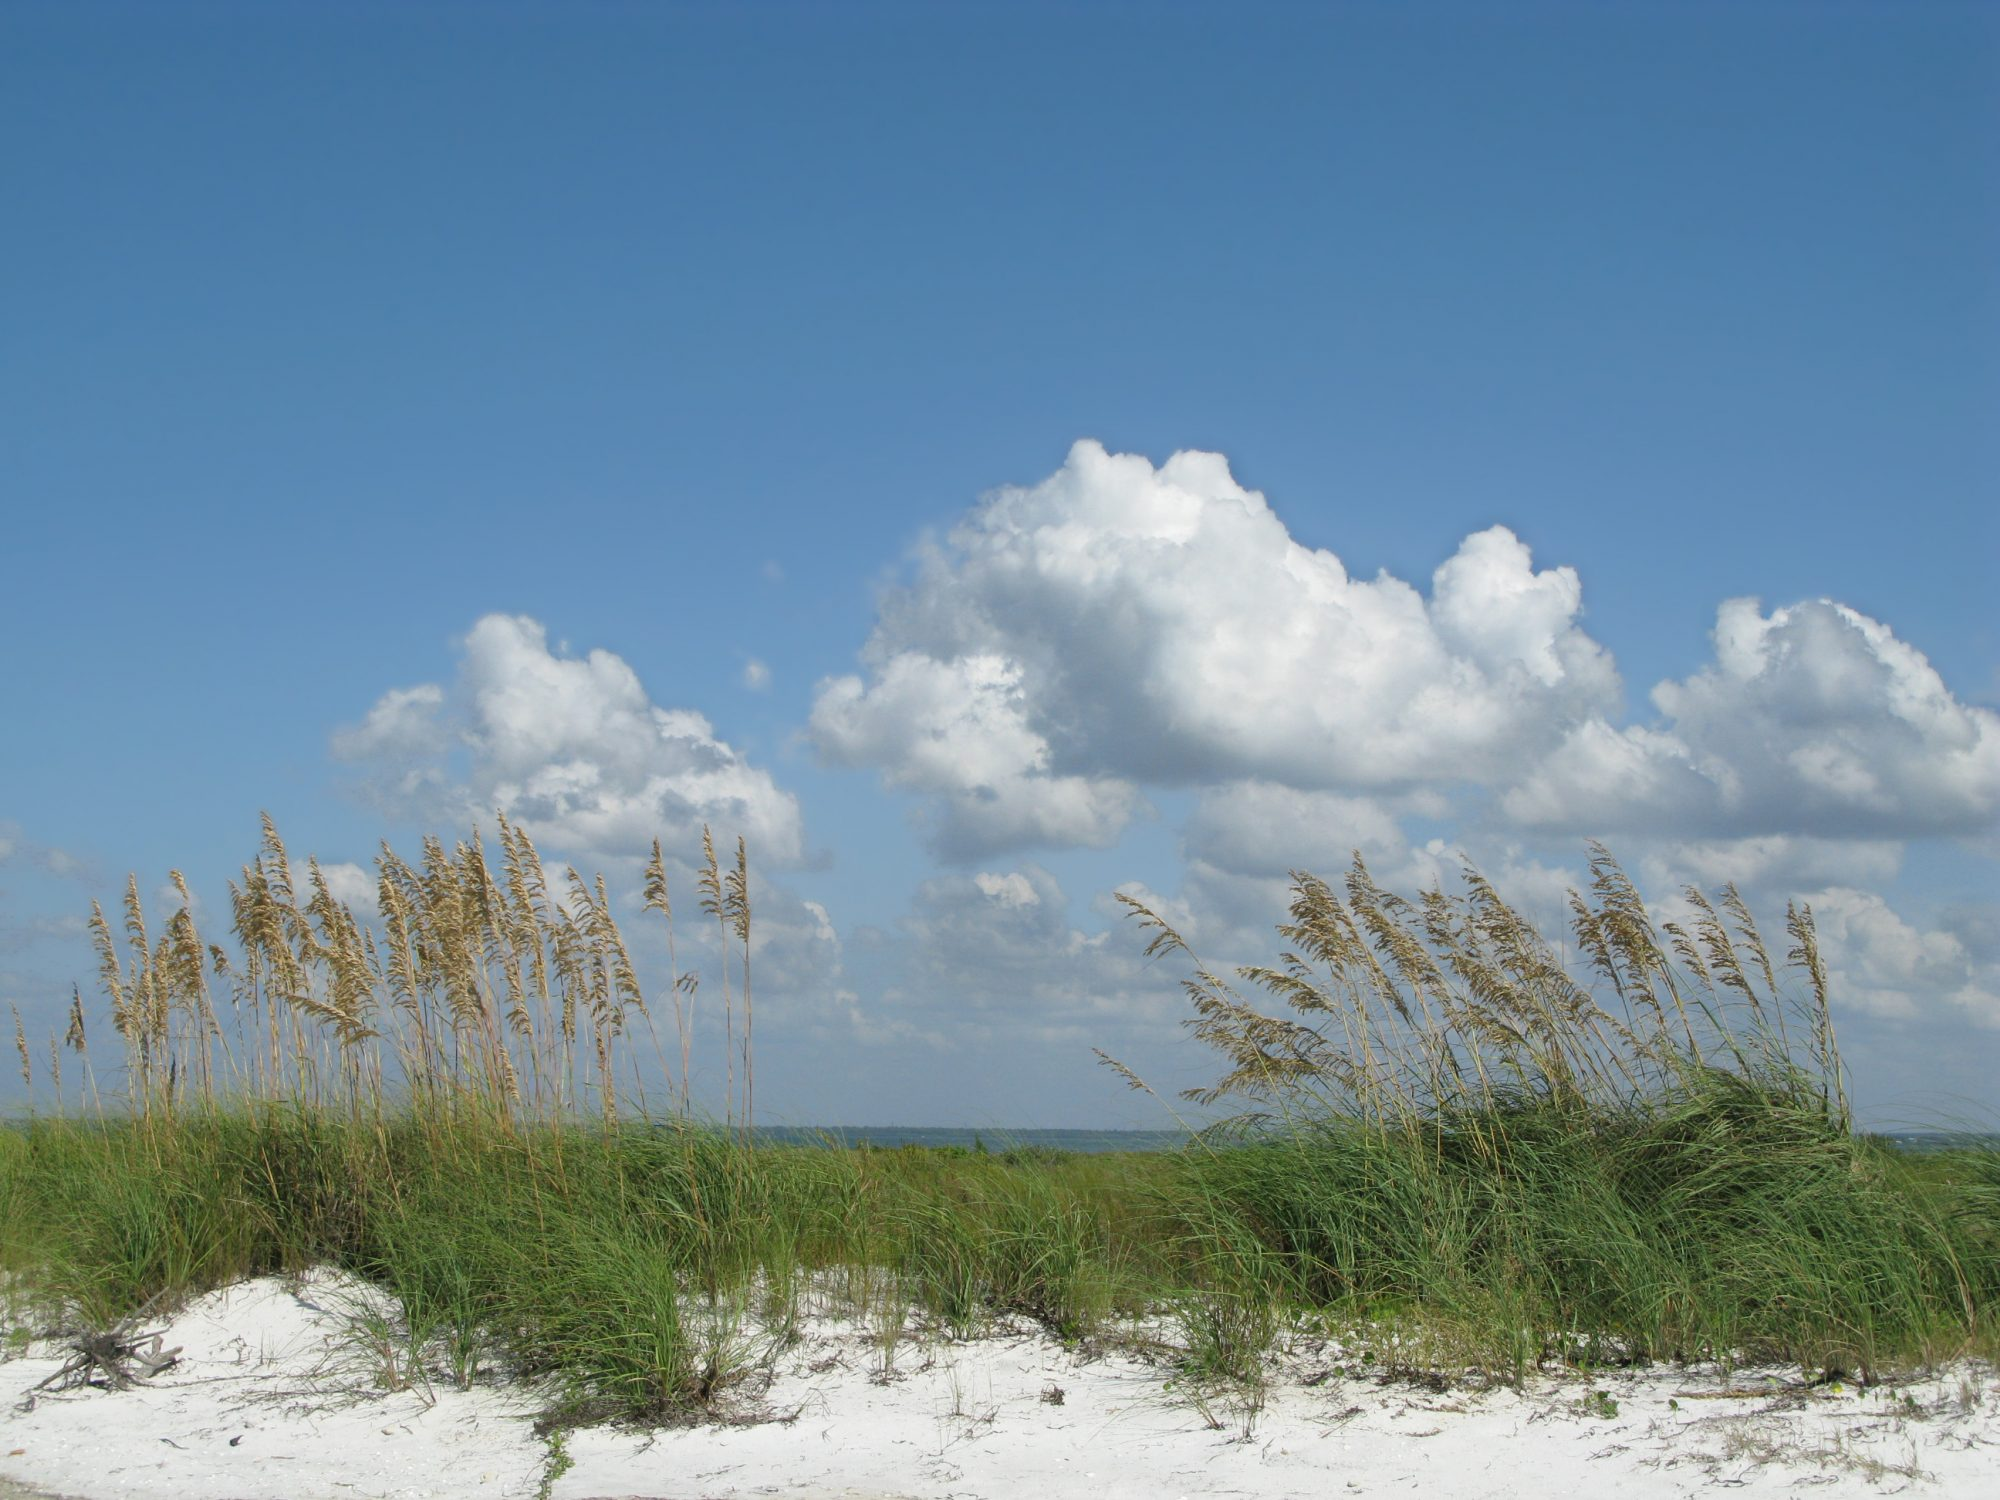 Seaoats in bloom with white sand, blue sky and plenty of copyspace. Beach concept.